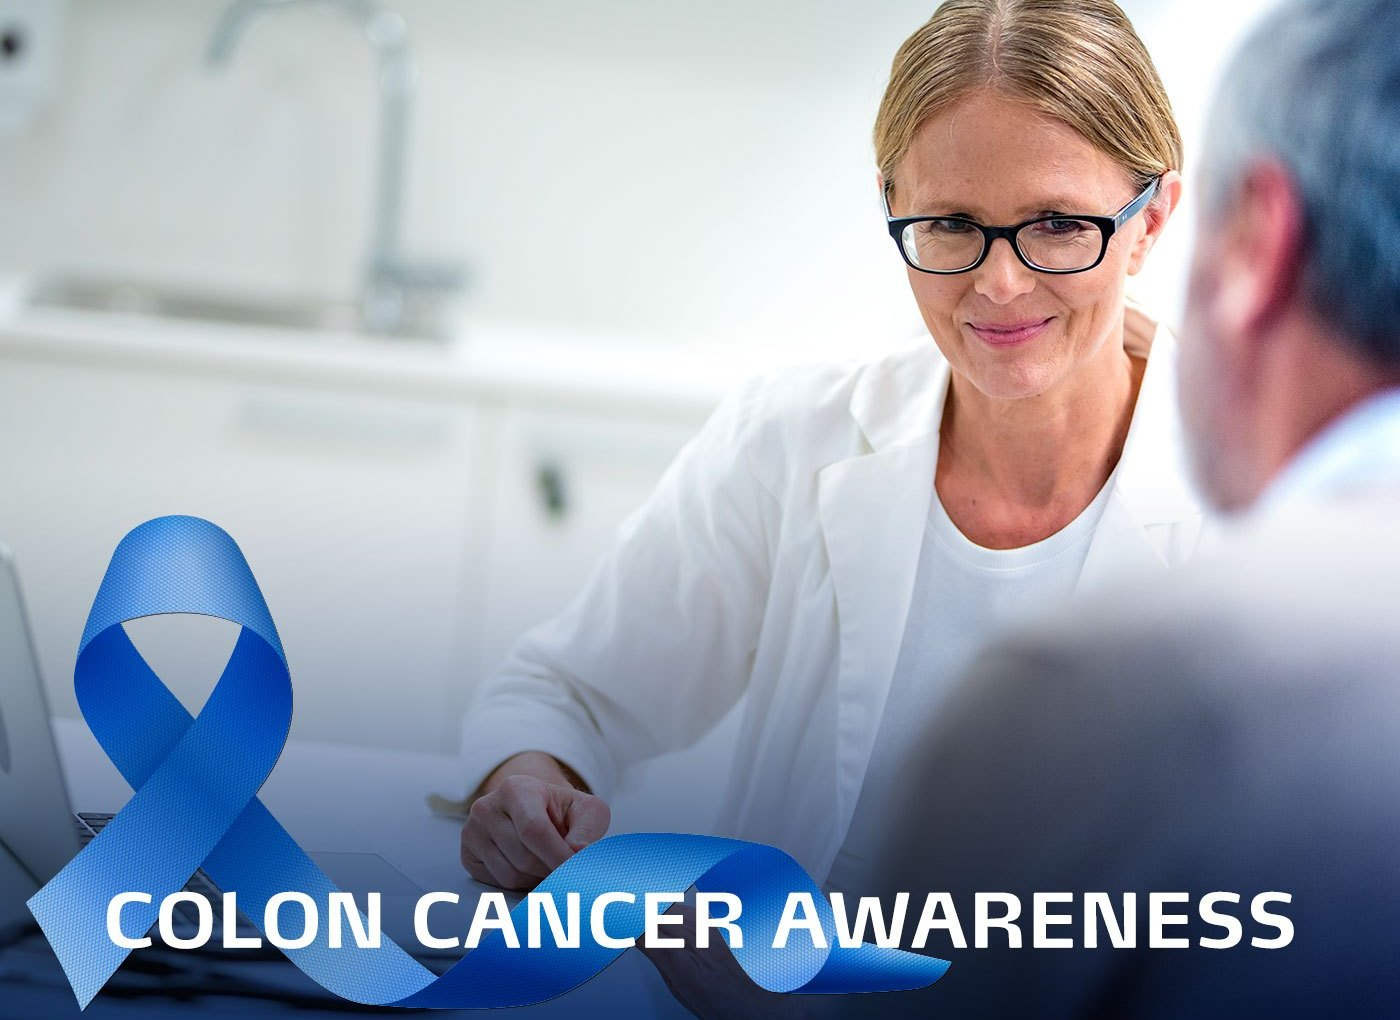 What you need to know about colon cancer screening